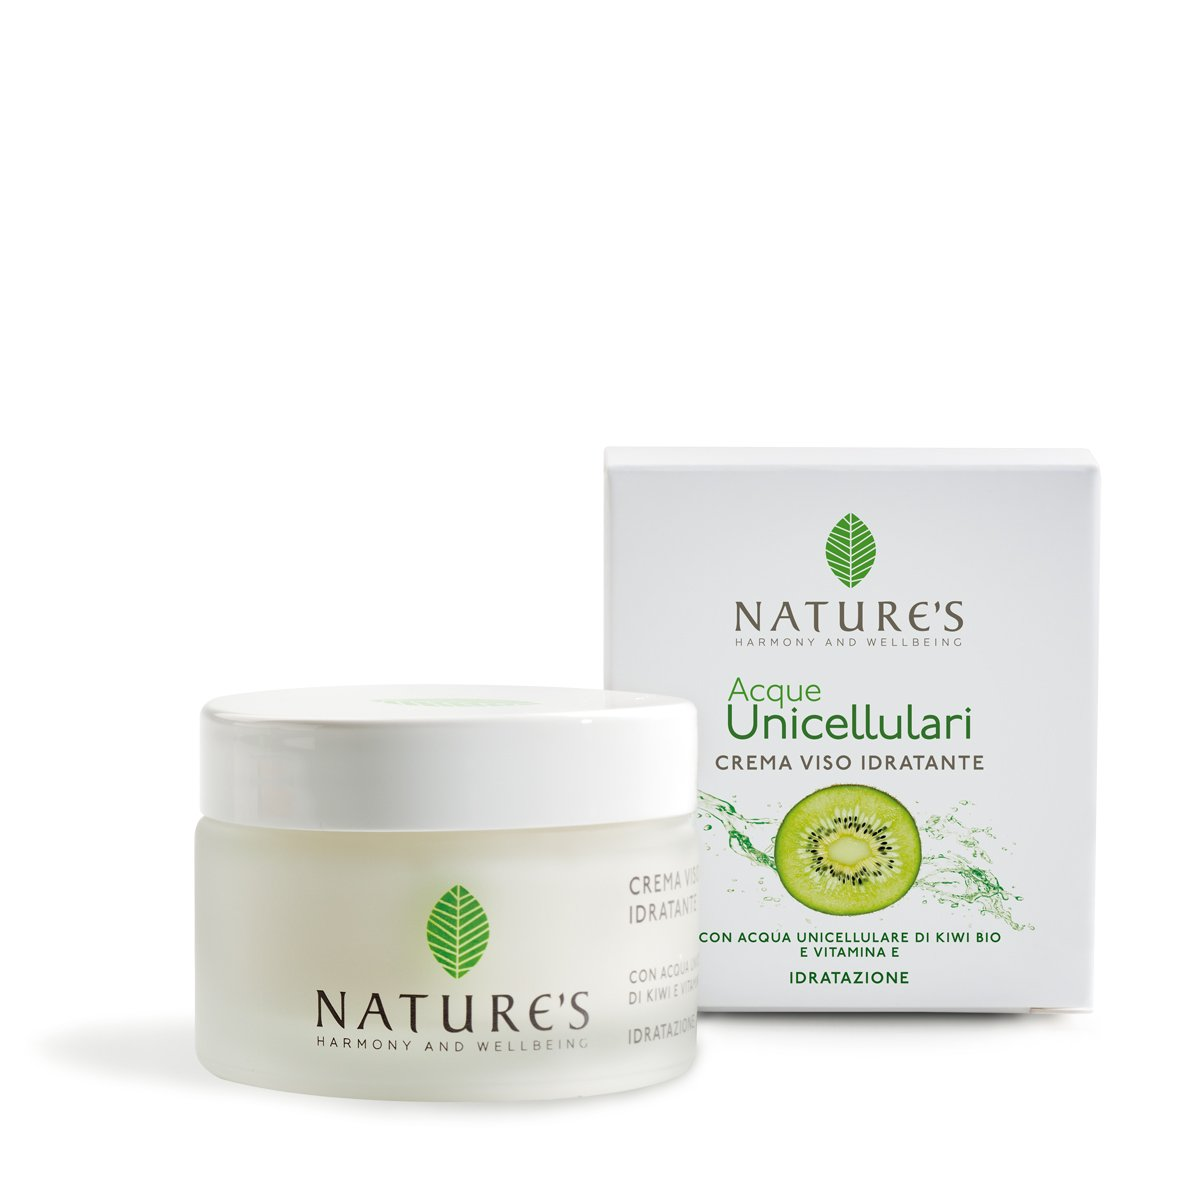 Crema Viso Idratante Acque Unicellulari Nature's